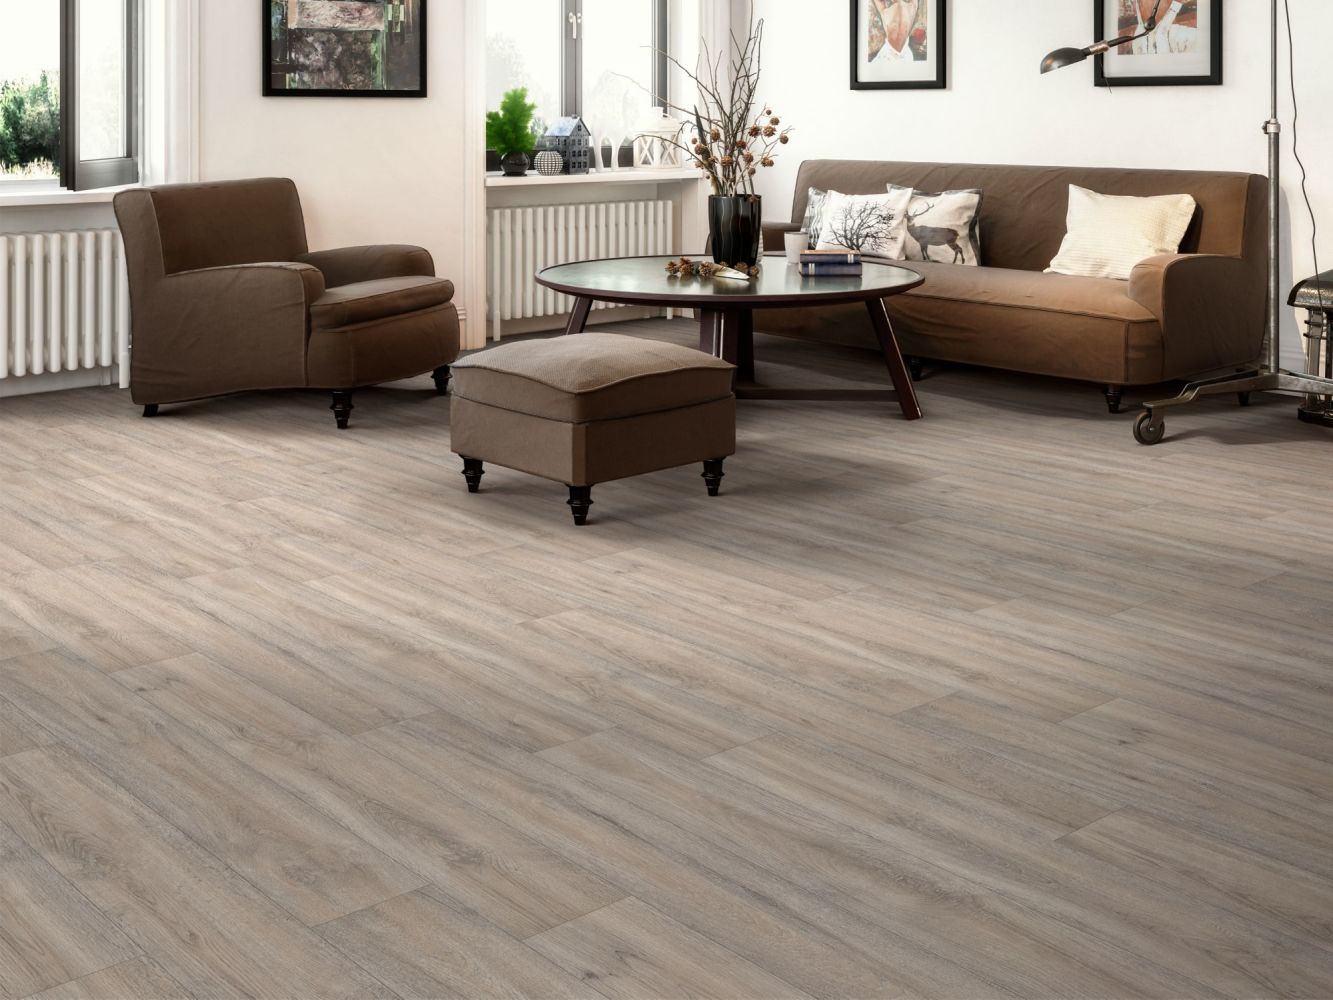 Shaw Floors Resilient Property Solutions Compact 12 Base Camp 07001_VG061